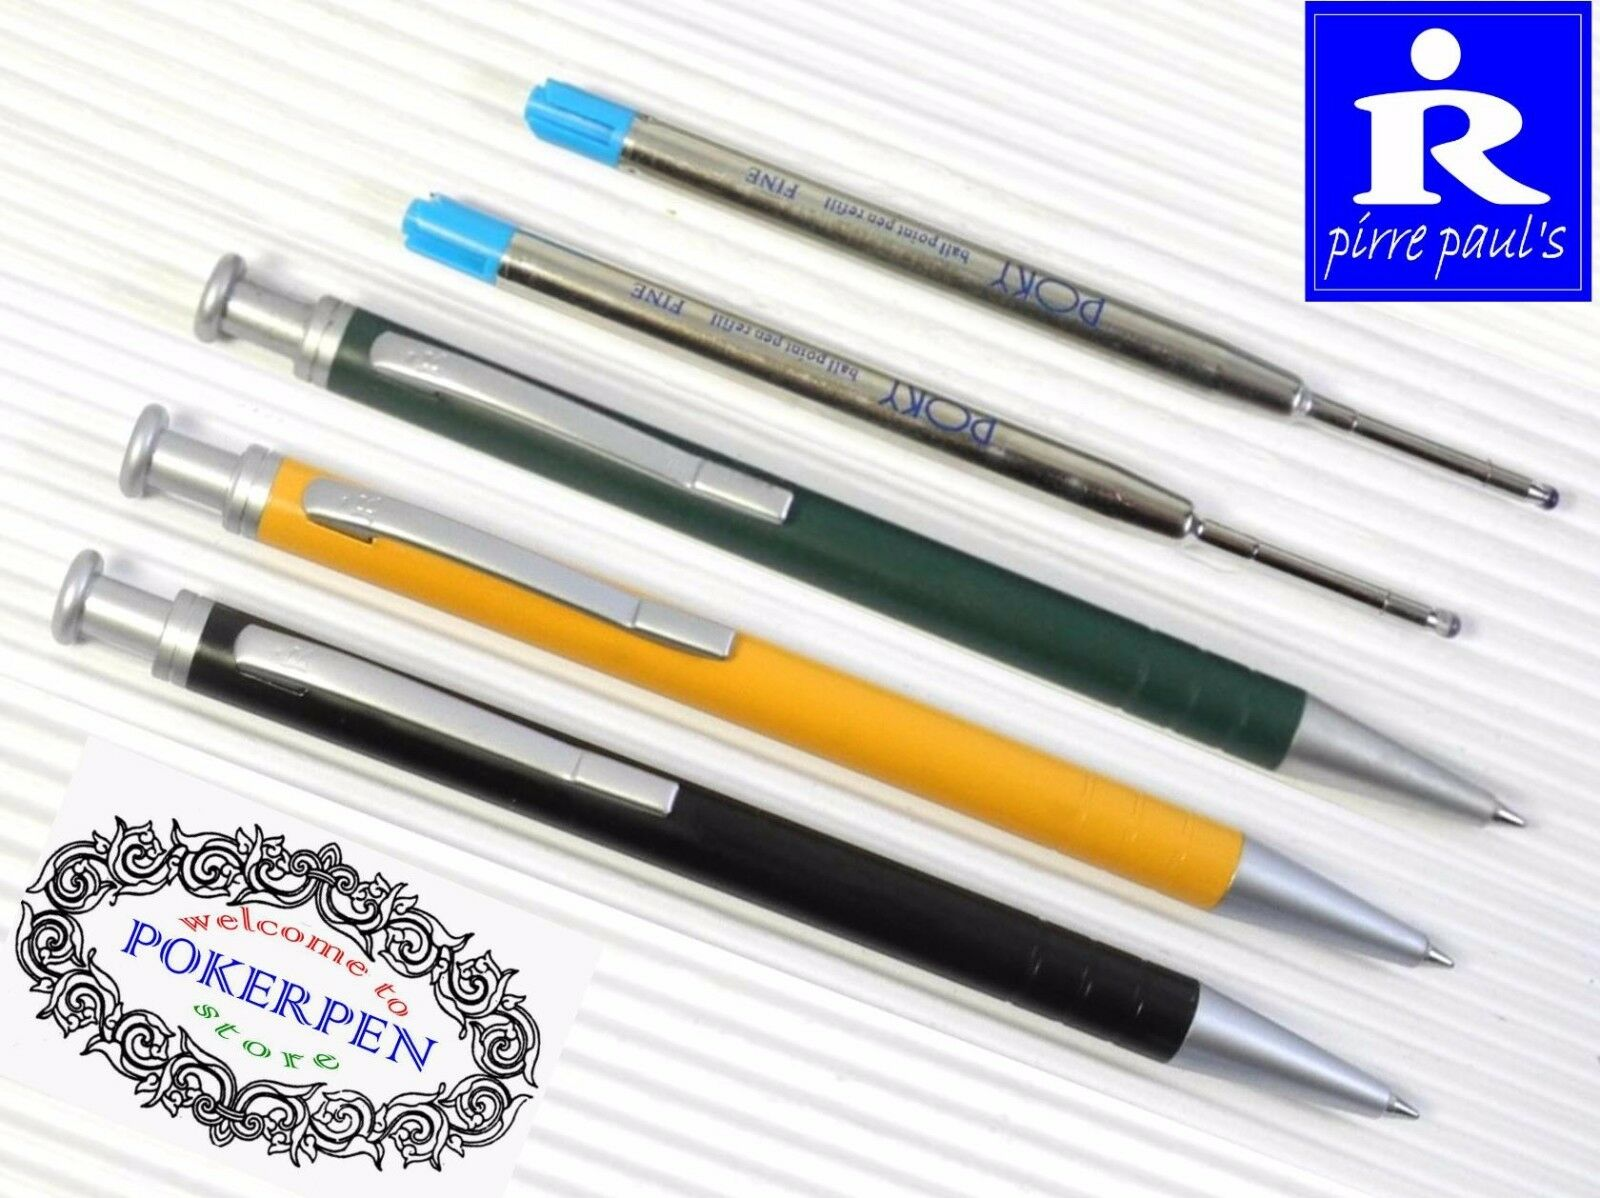 2 refills pirre paul/'s 320bc ball point pen Blue ink free ship 3 pens